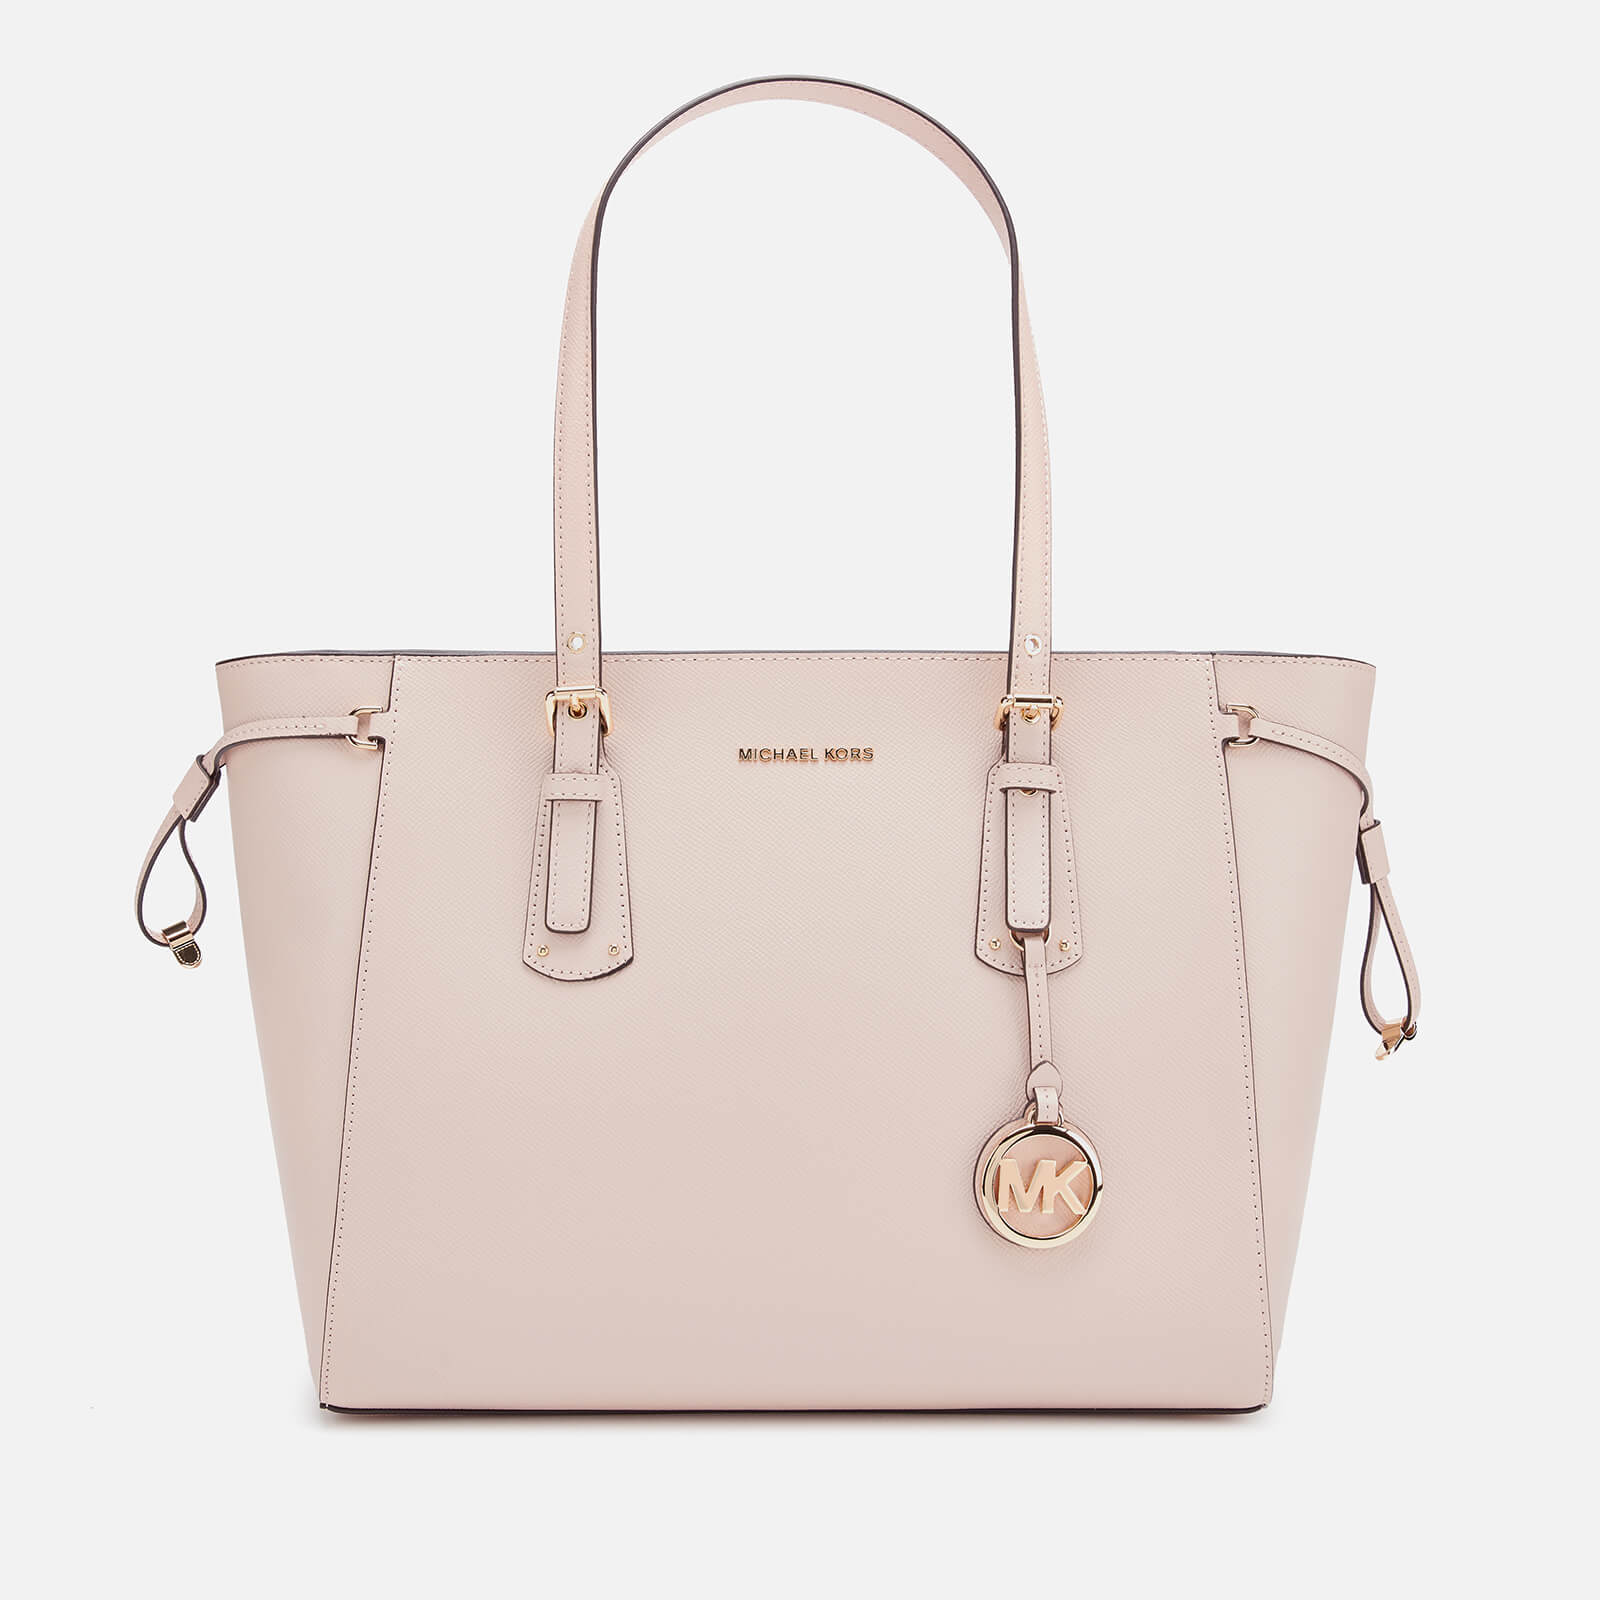 MICHAEL MICHAEL KORS Women's Voyager Medium Top Zip Tote Bag Soft Pink